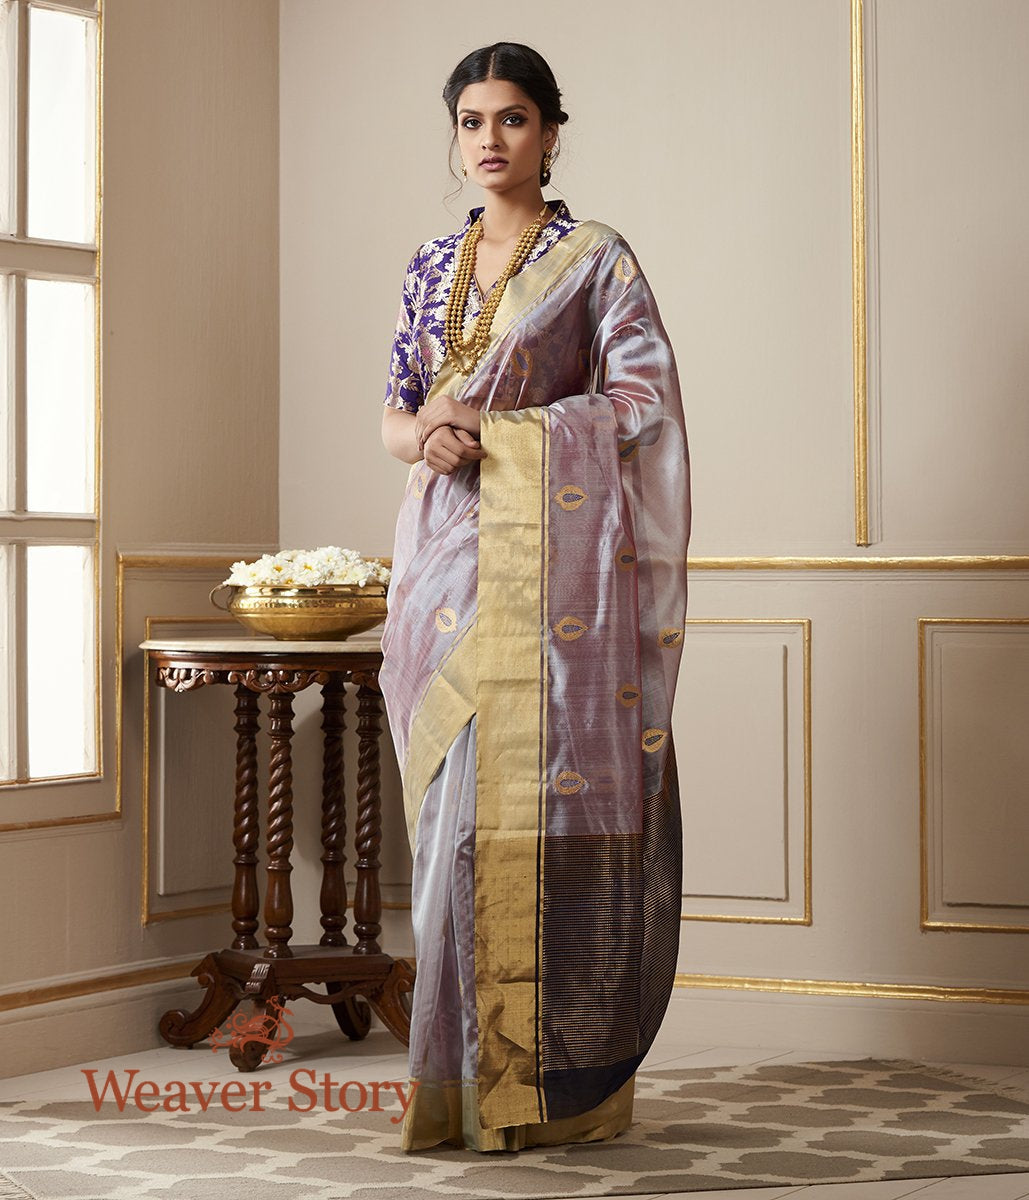 Handwoven Mauve Dual Tone Chanderi Silk Saree with Mughal Motif